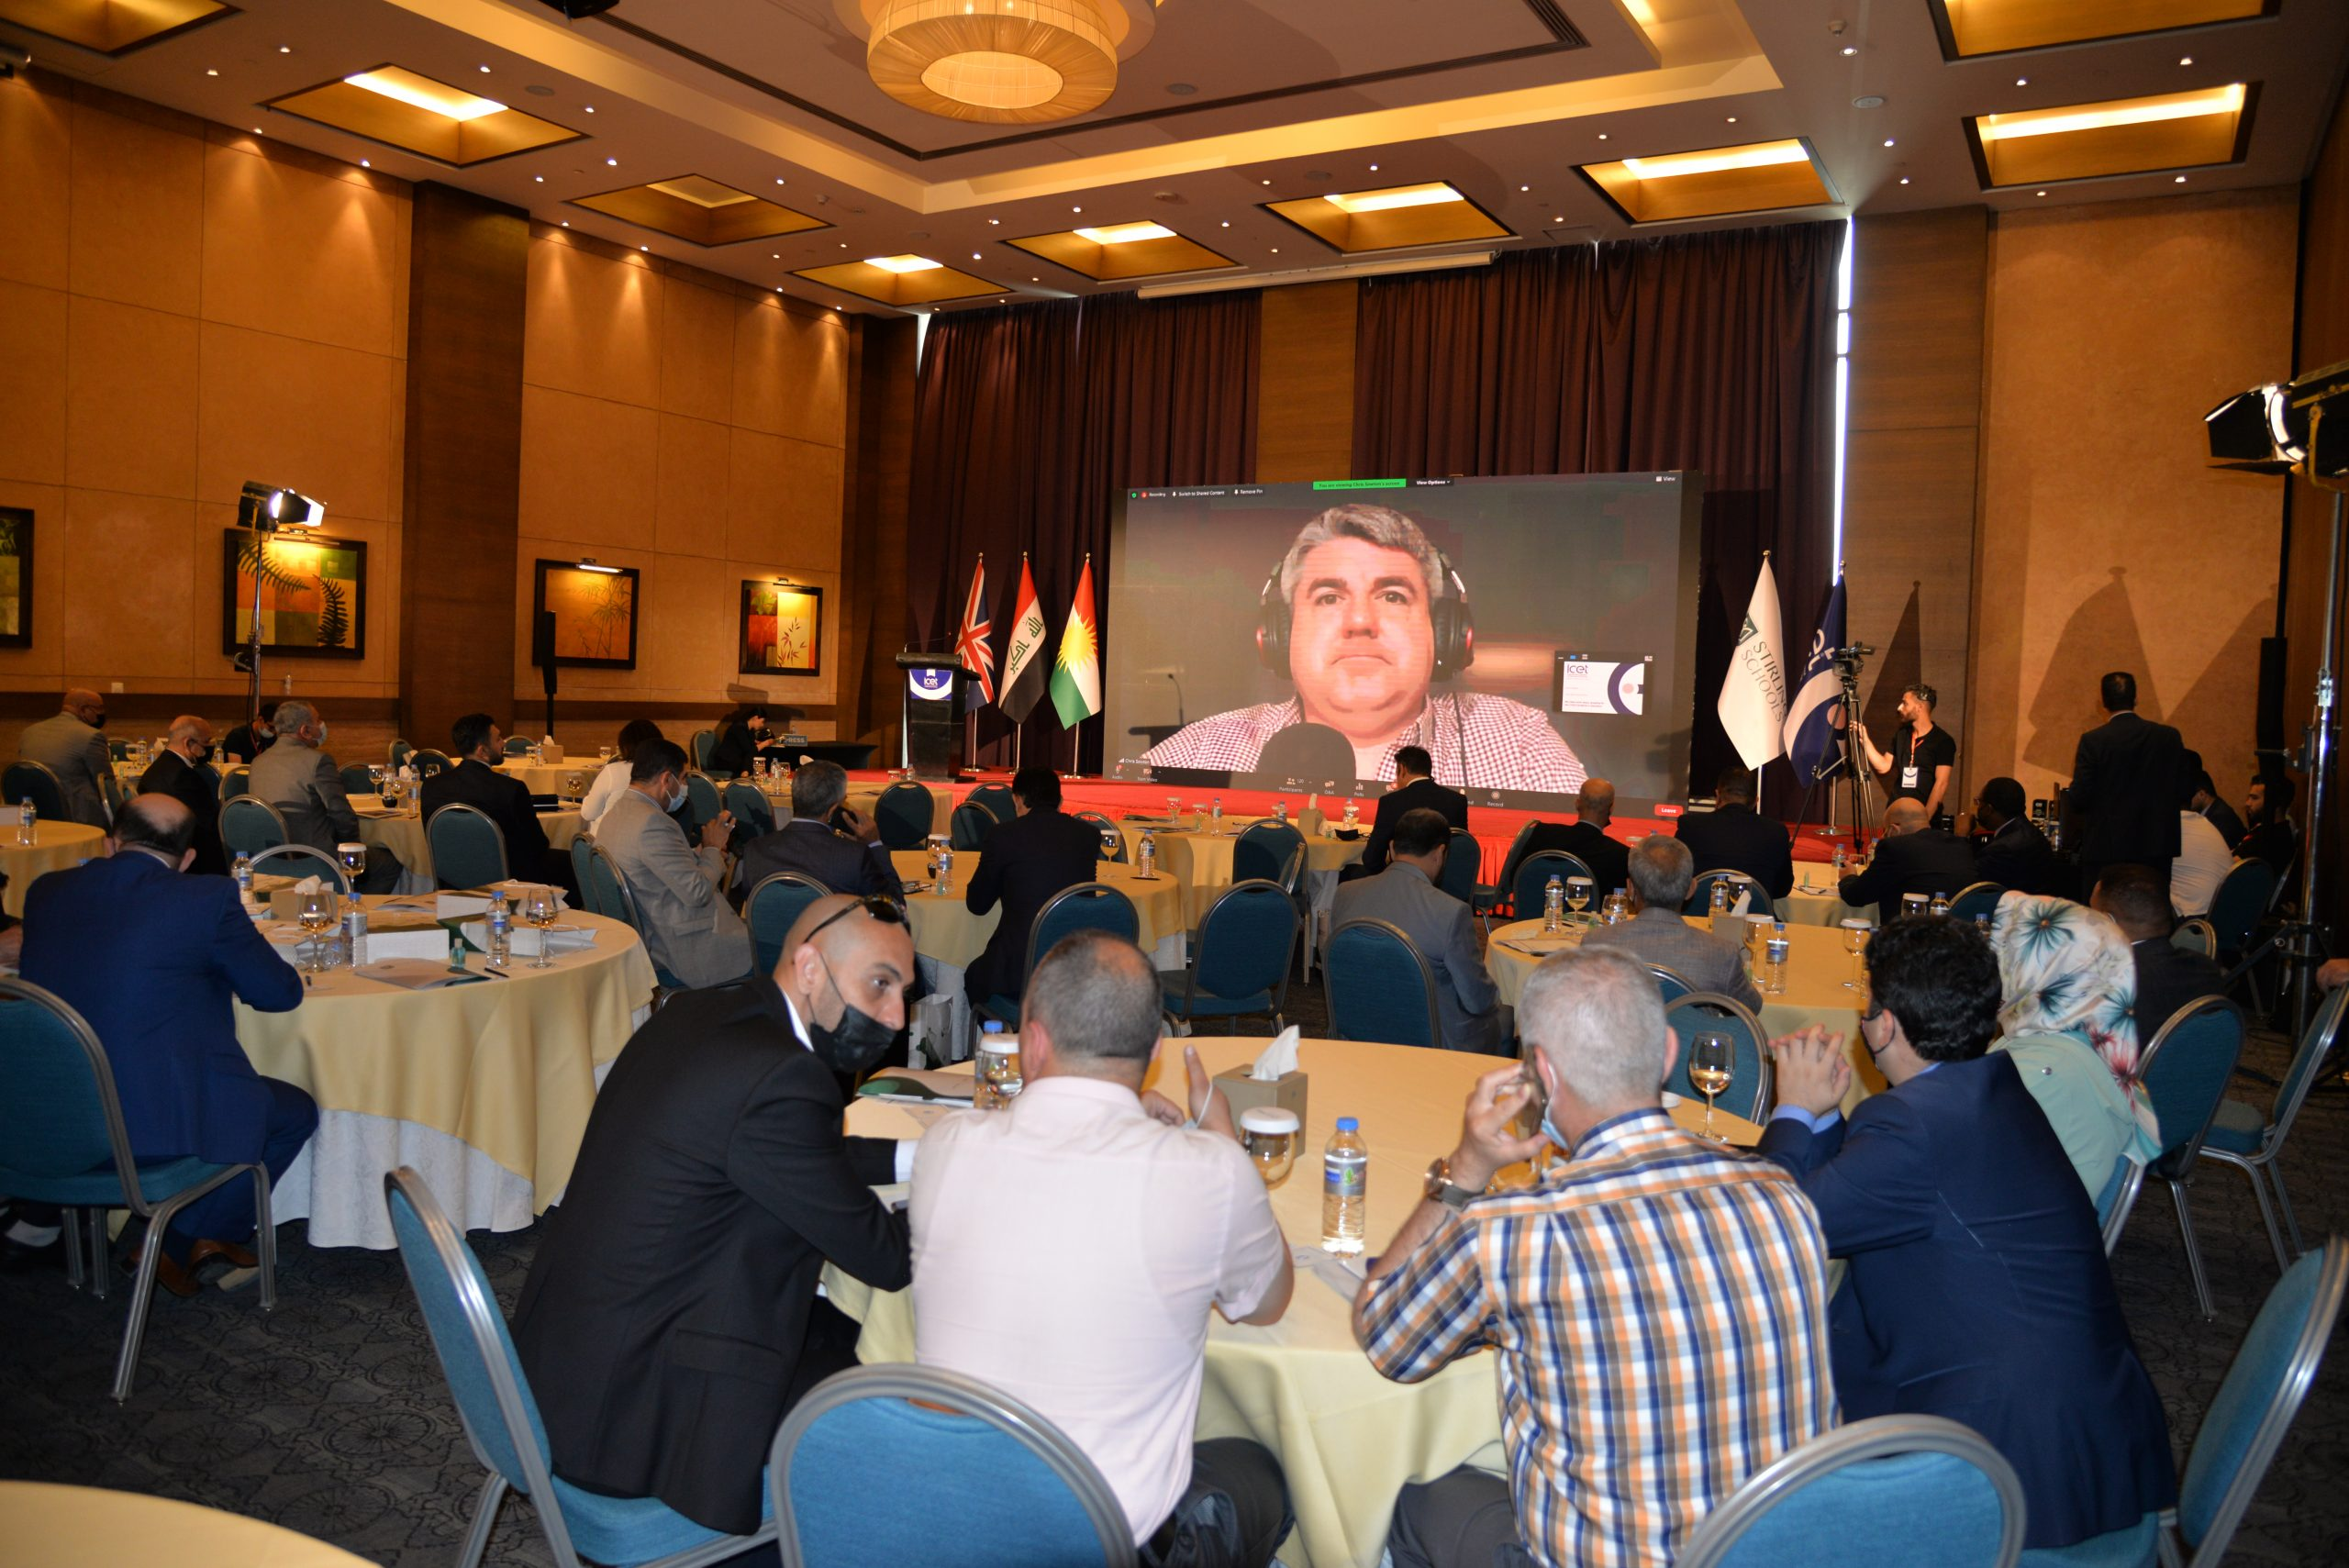 Erbil Polytechnic University Attends The First Annual International Conference on Education and Teaching